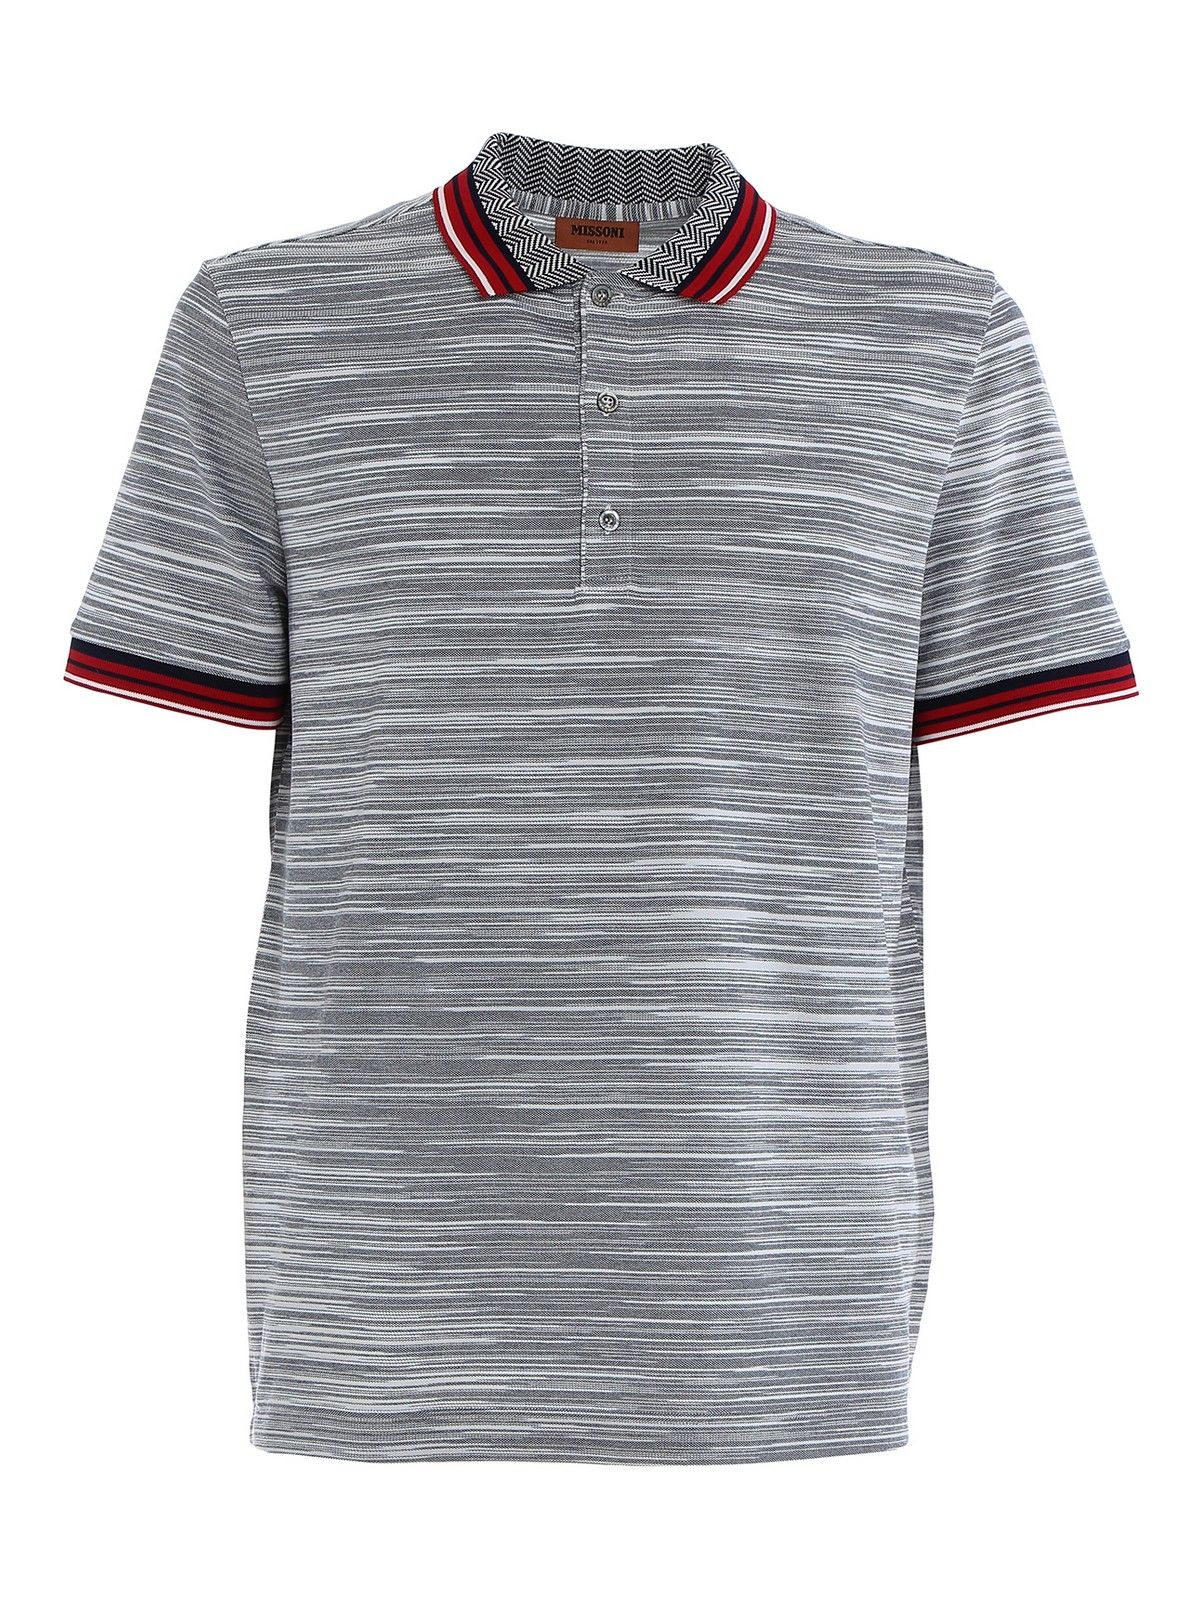 Missoni Cottons MISSONI MEN'S GREY COTTON POLO SHIRT